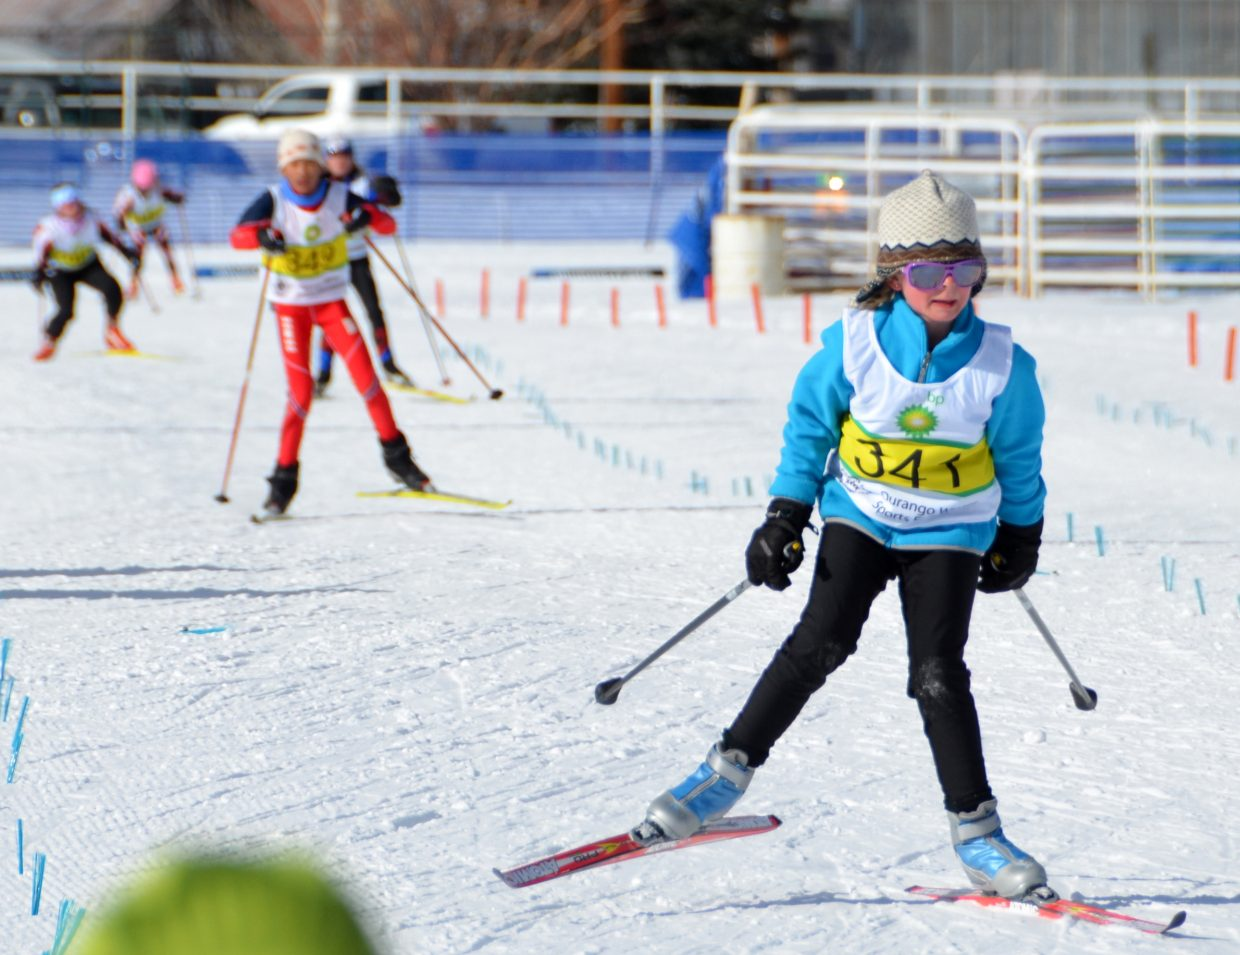 J5 skier Claudia Luthy, of Durango, leads the pack during a cross-country event at Howelsen Hill on Friday.